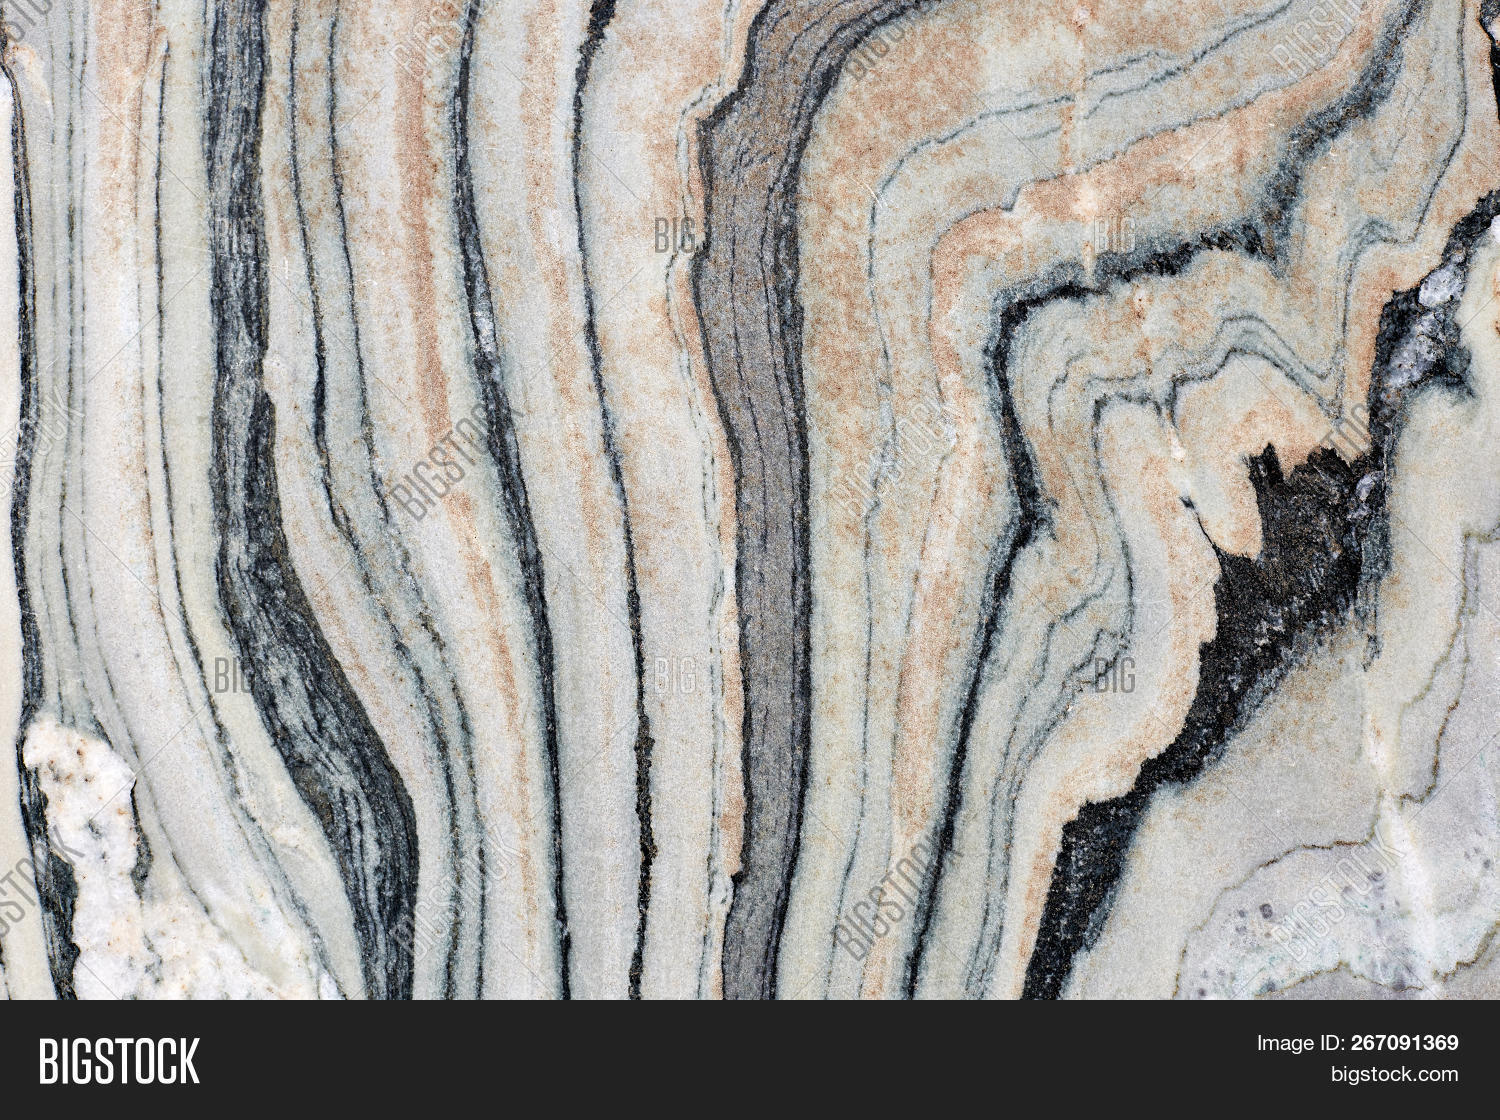 Old Marble Texture Image Photo Free Trial Bigstock